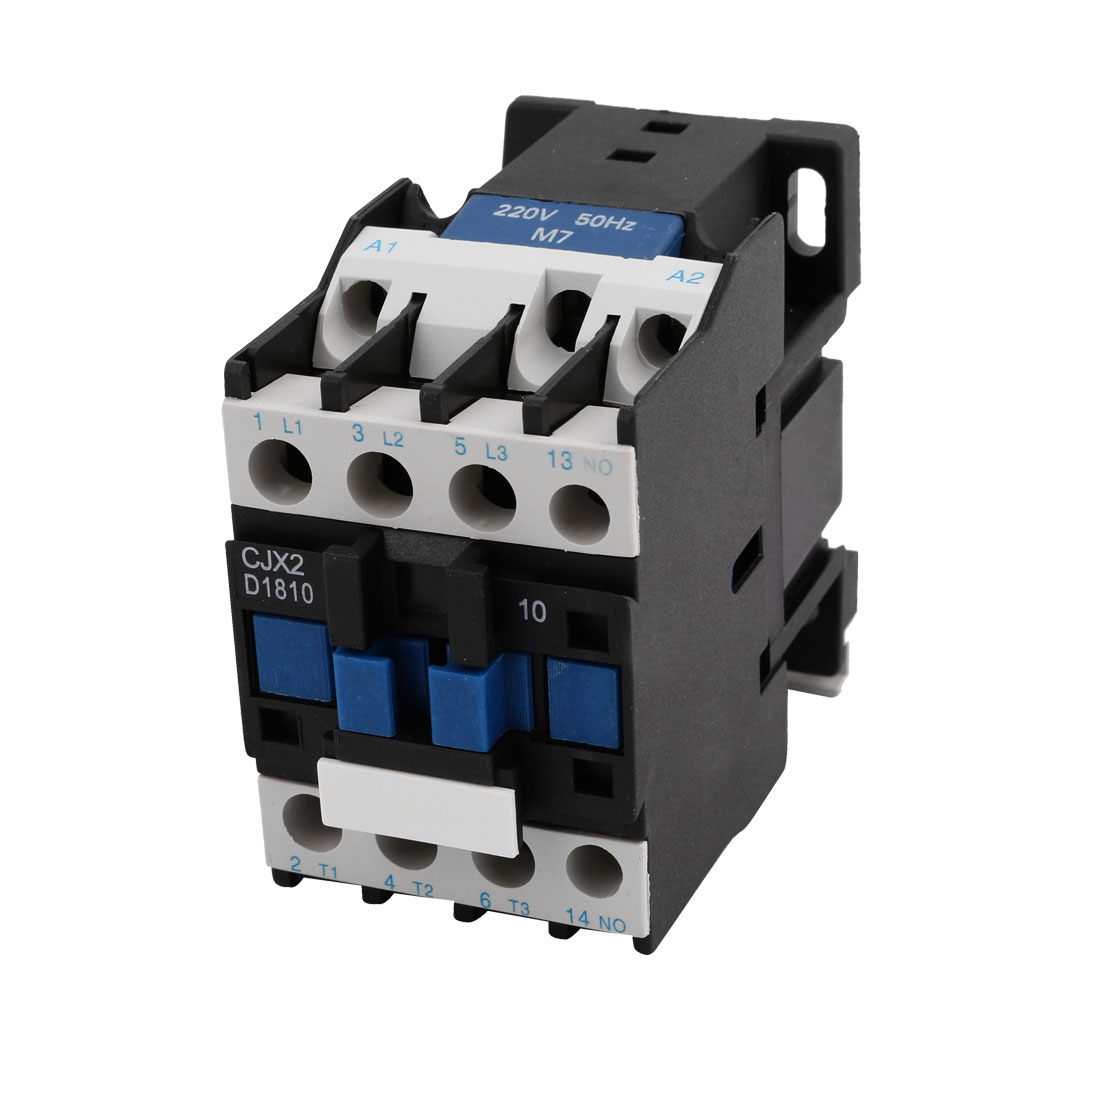 CJX2-1810 220V 50Hz Rated Coil Voltage 3Phase 1NO AC Contactor Ith 32A Ui 660V